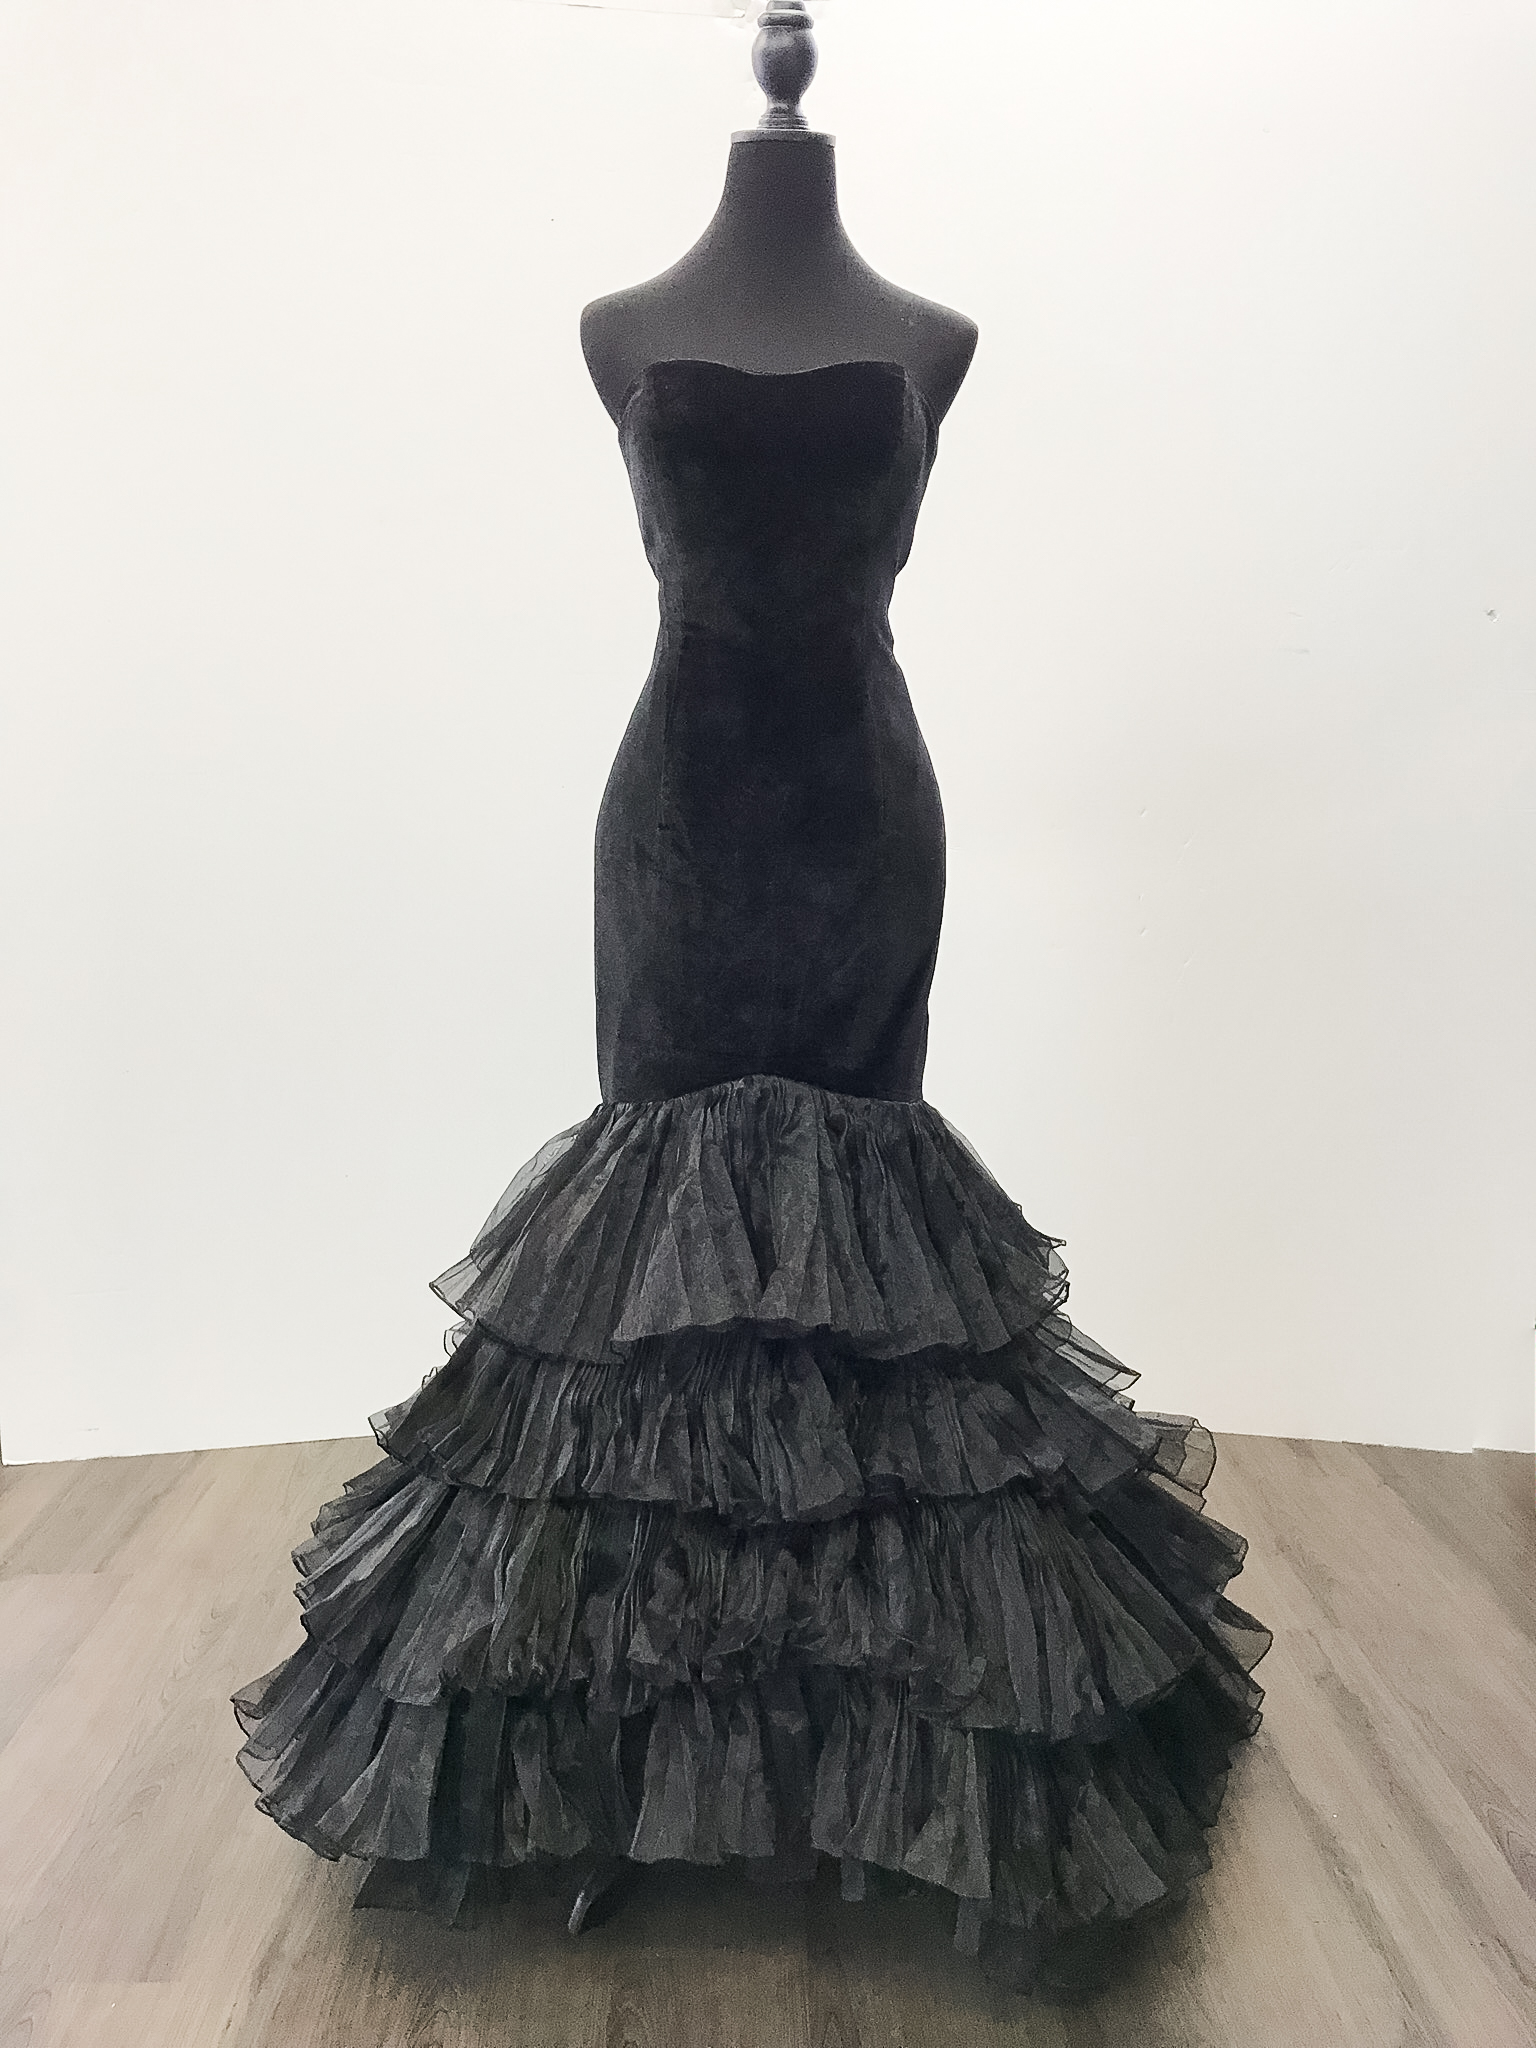 black ball gown-INSTA.jpg